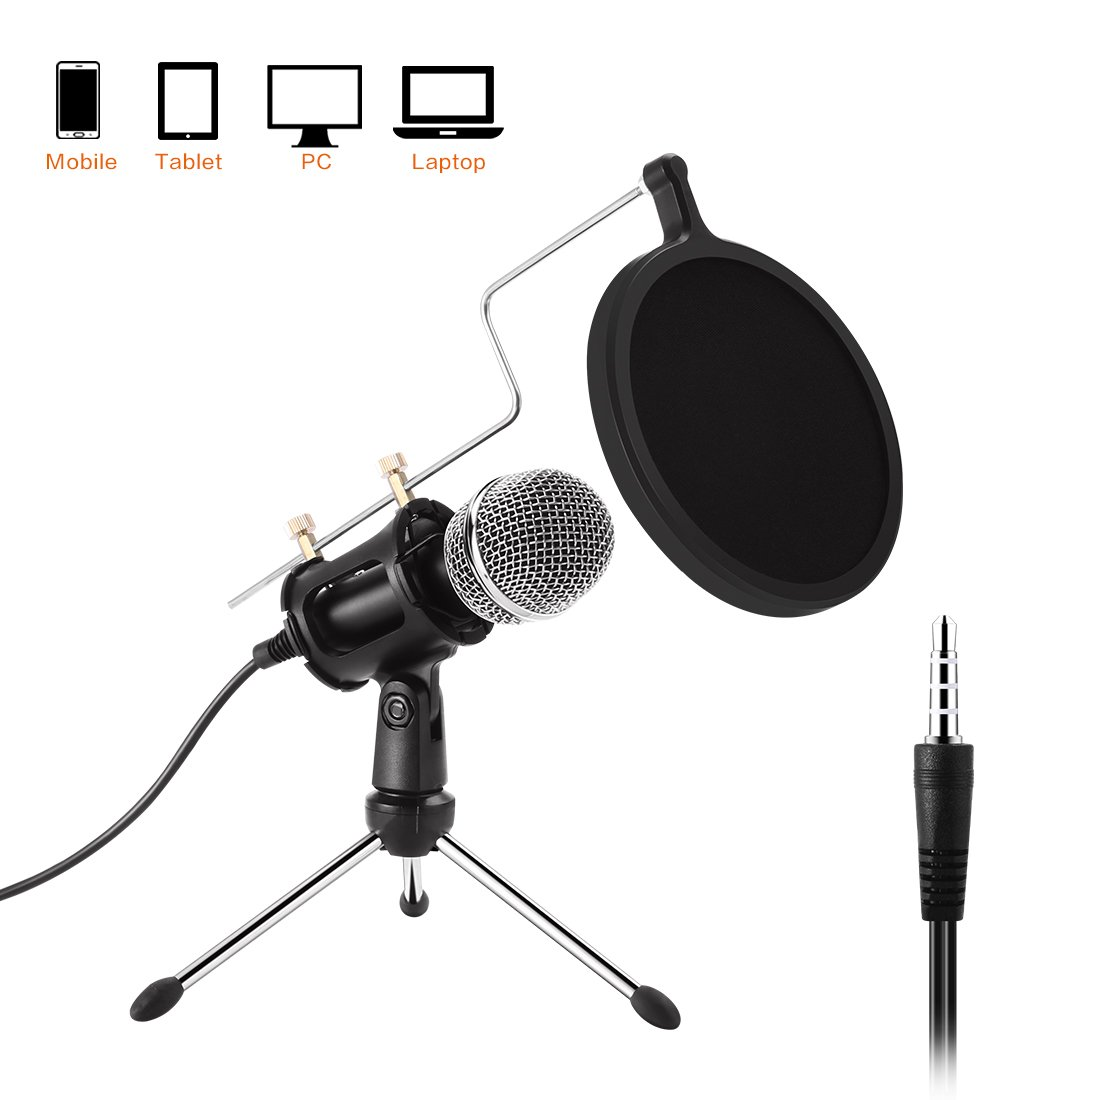 PC Microphone - Etpark USB Plug & Play Professional Home Studio Condenser Microphone for Podcast, Recording,Online Chatting Such as Facebook,MSN, Skype,YouTube,Games,for PC,Laptop,Windows/Mac,with Tripod Stand,Pop Filter Mini Desktop MIC Stand Etpark51